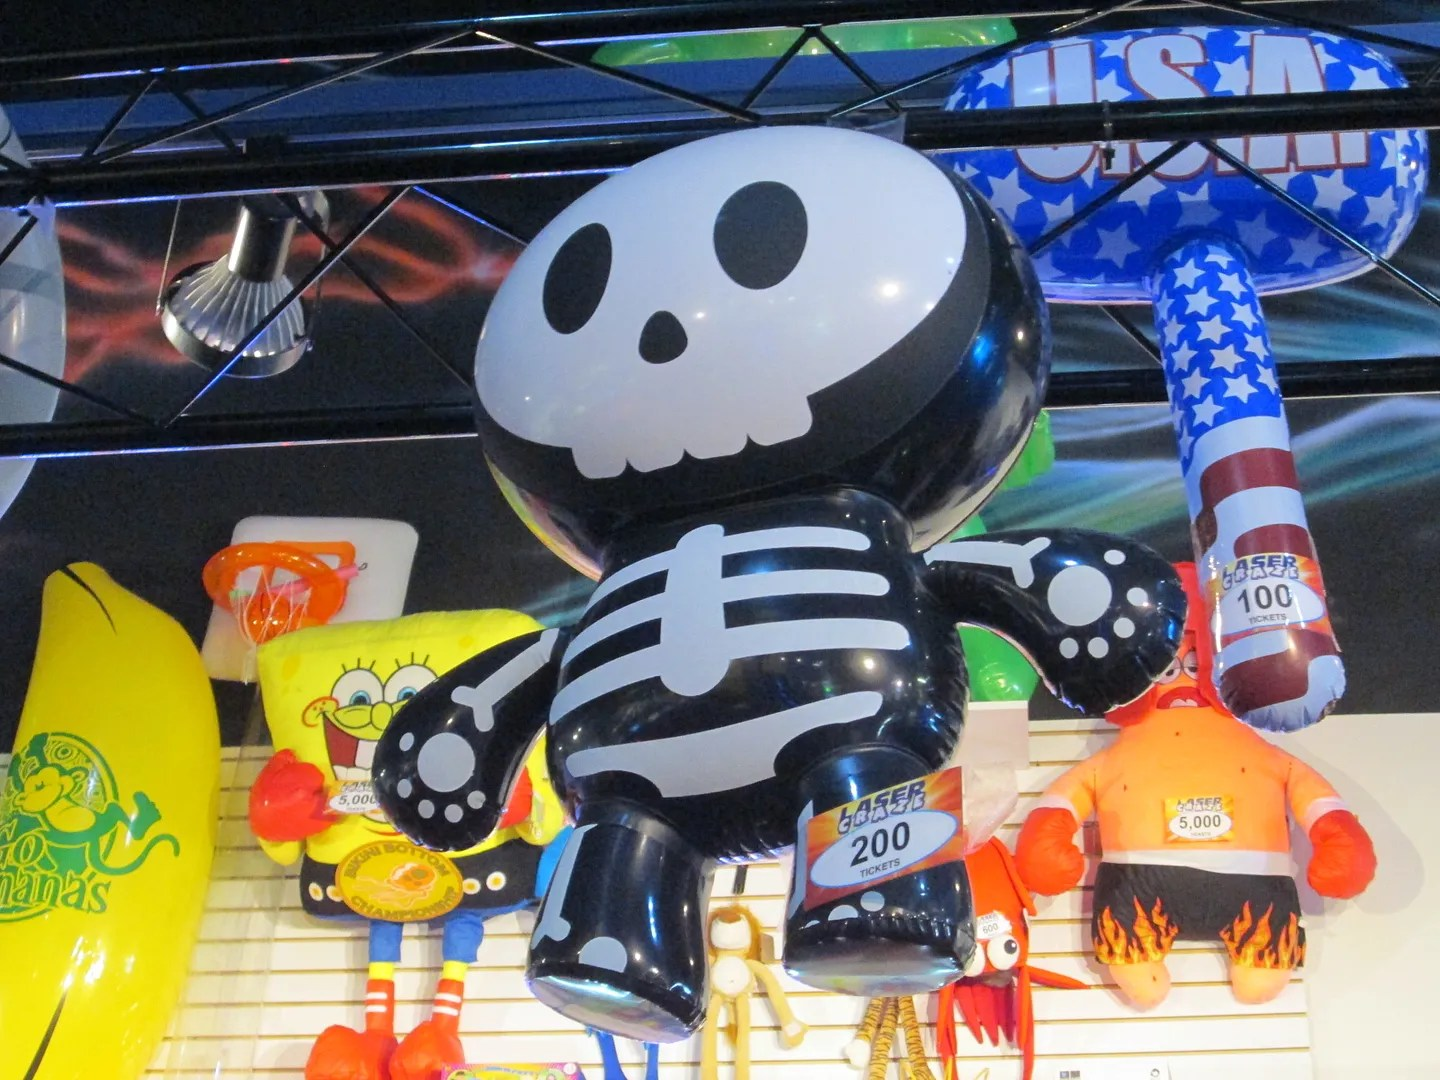 cute inflatable skeleton hanging up at an arcade